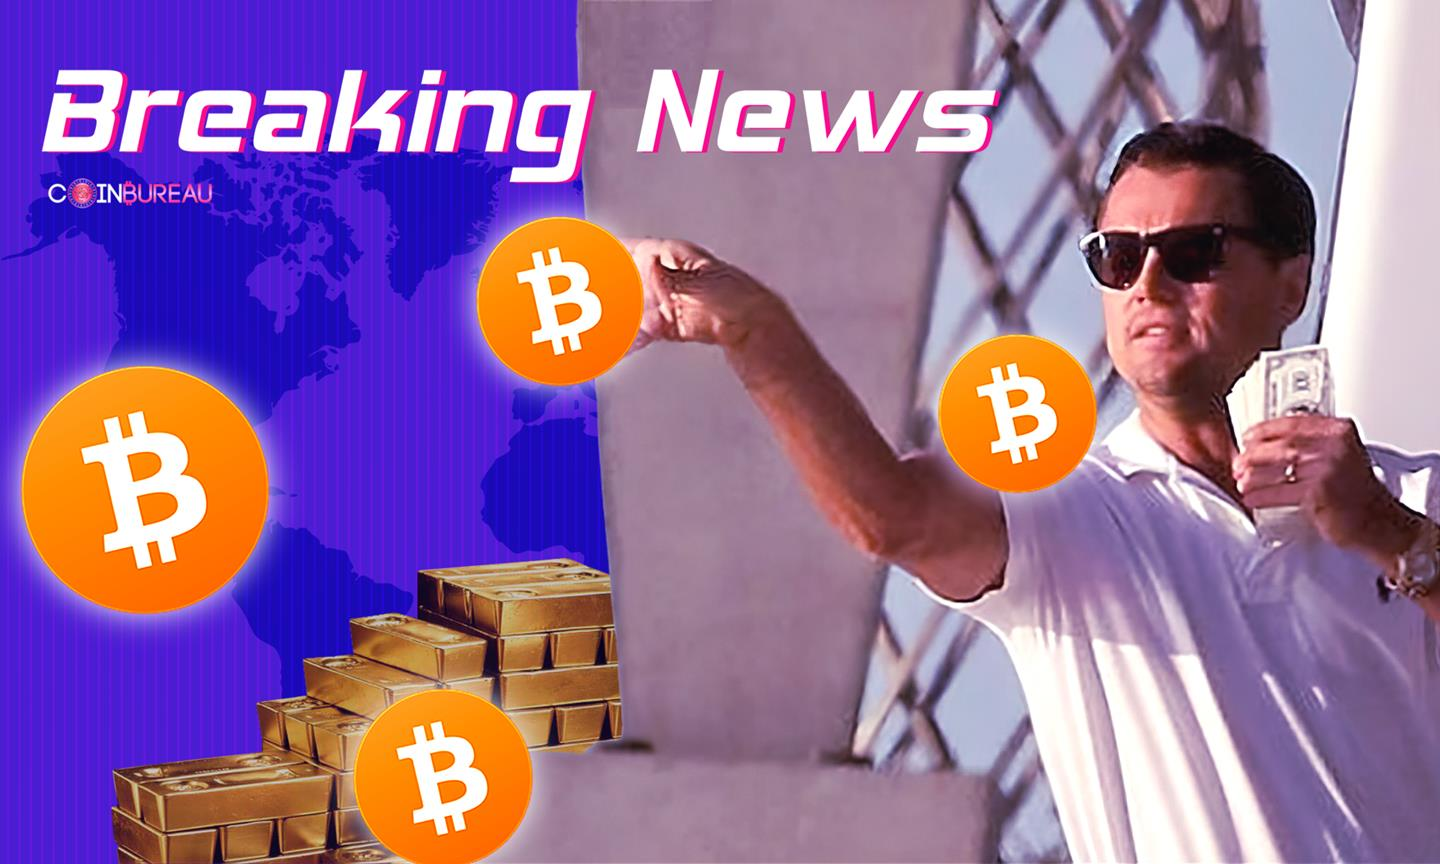 Billionaires Backing Bitcoin Over Gold